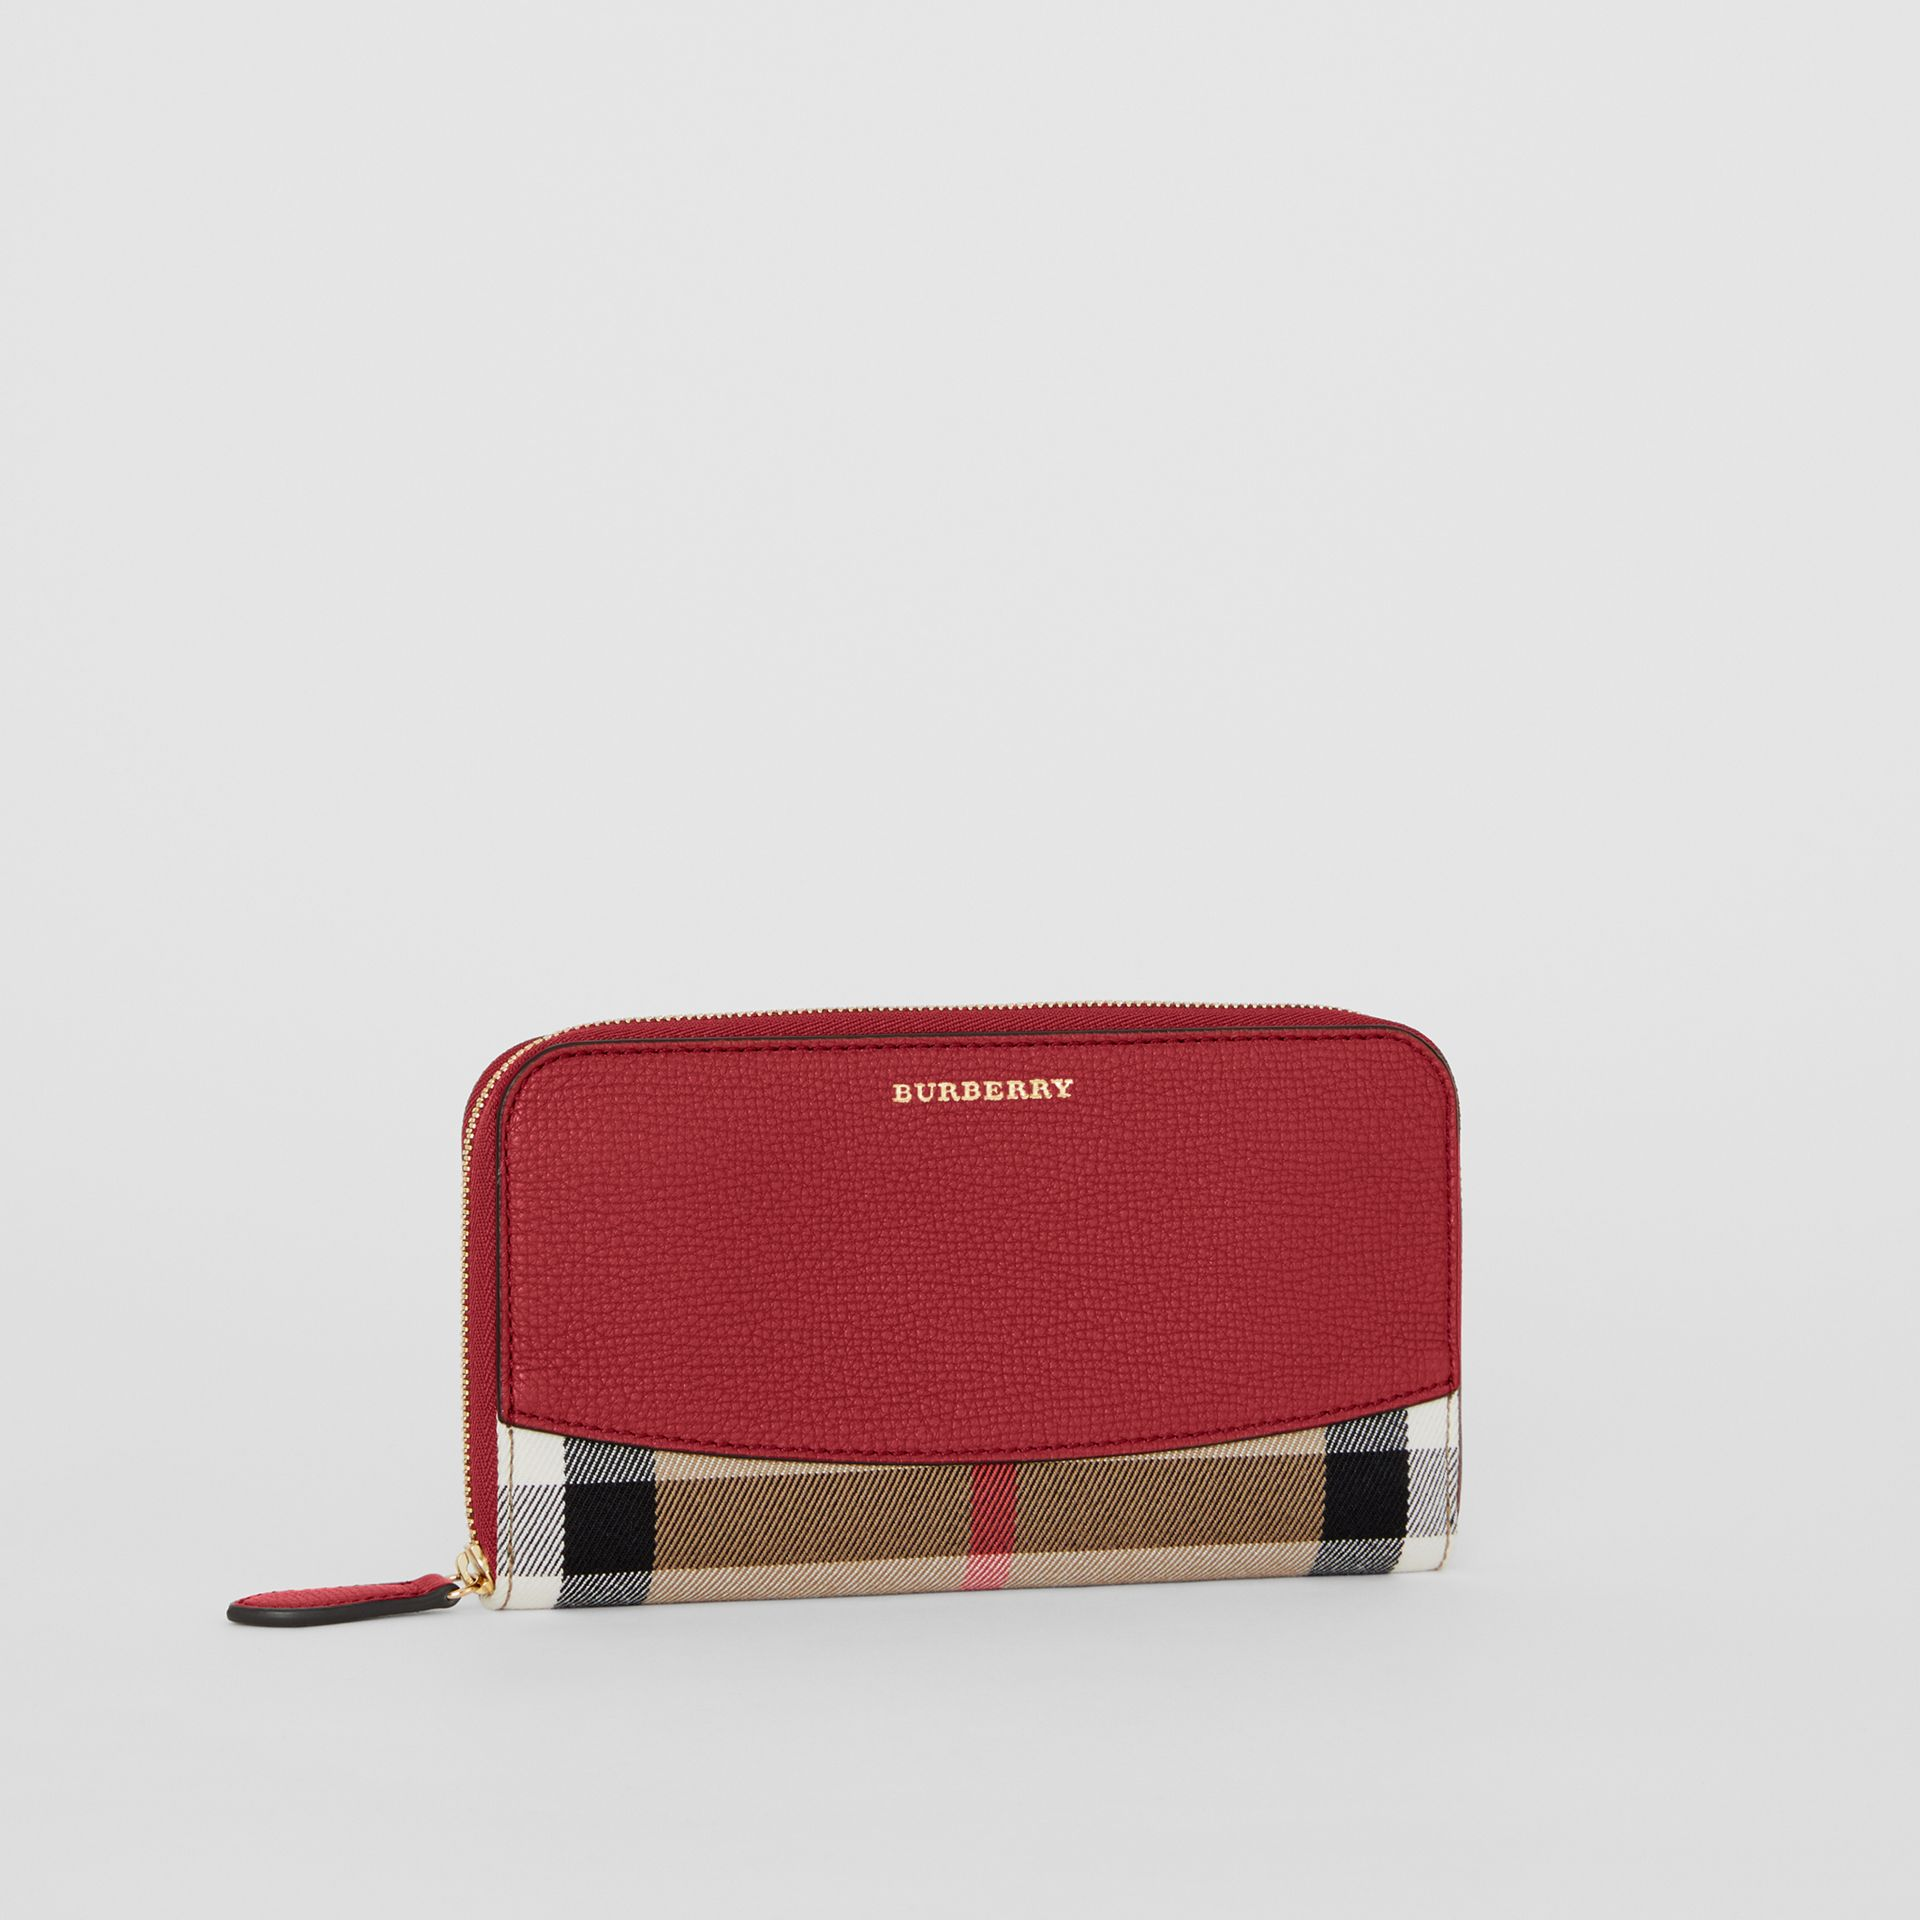 House Check and Leather Ziparound Wallet in Russet Red - Women | Burberry United Kingdom - gallery image 3